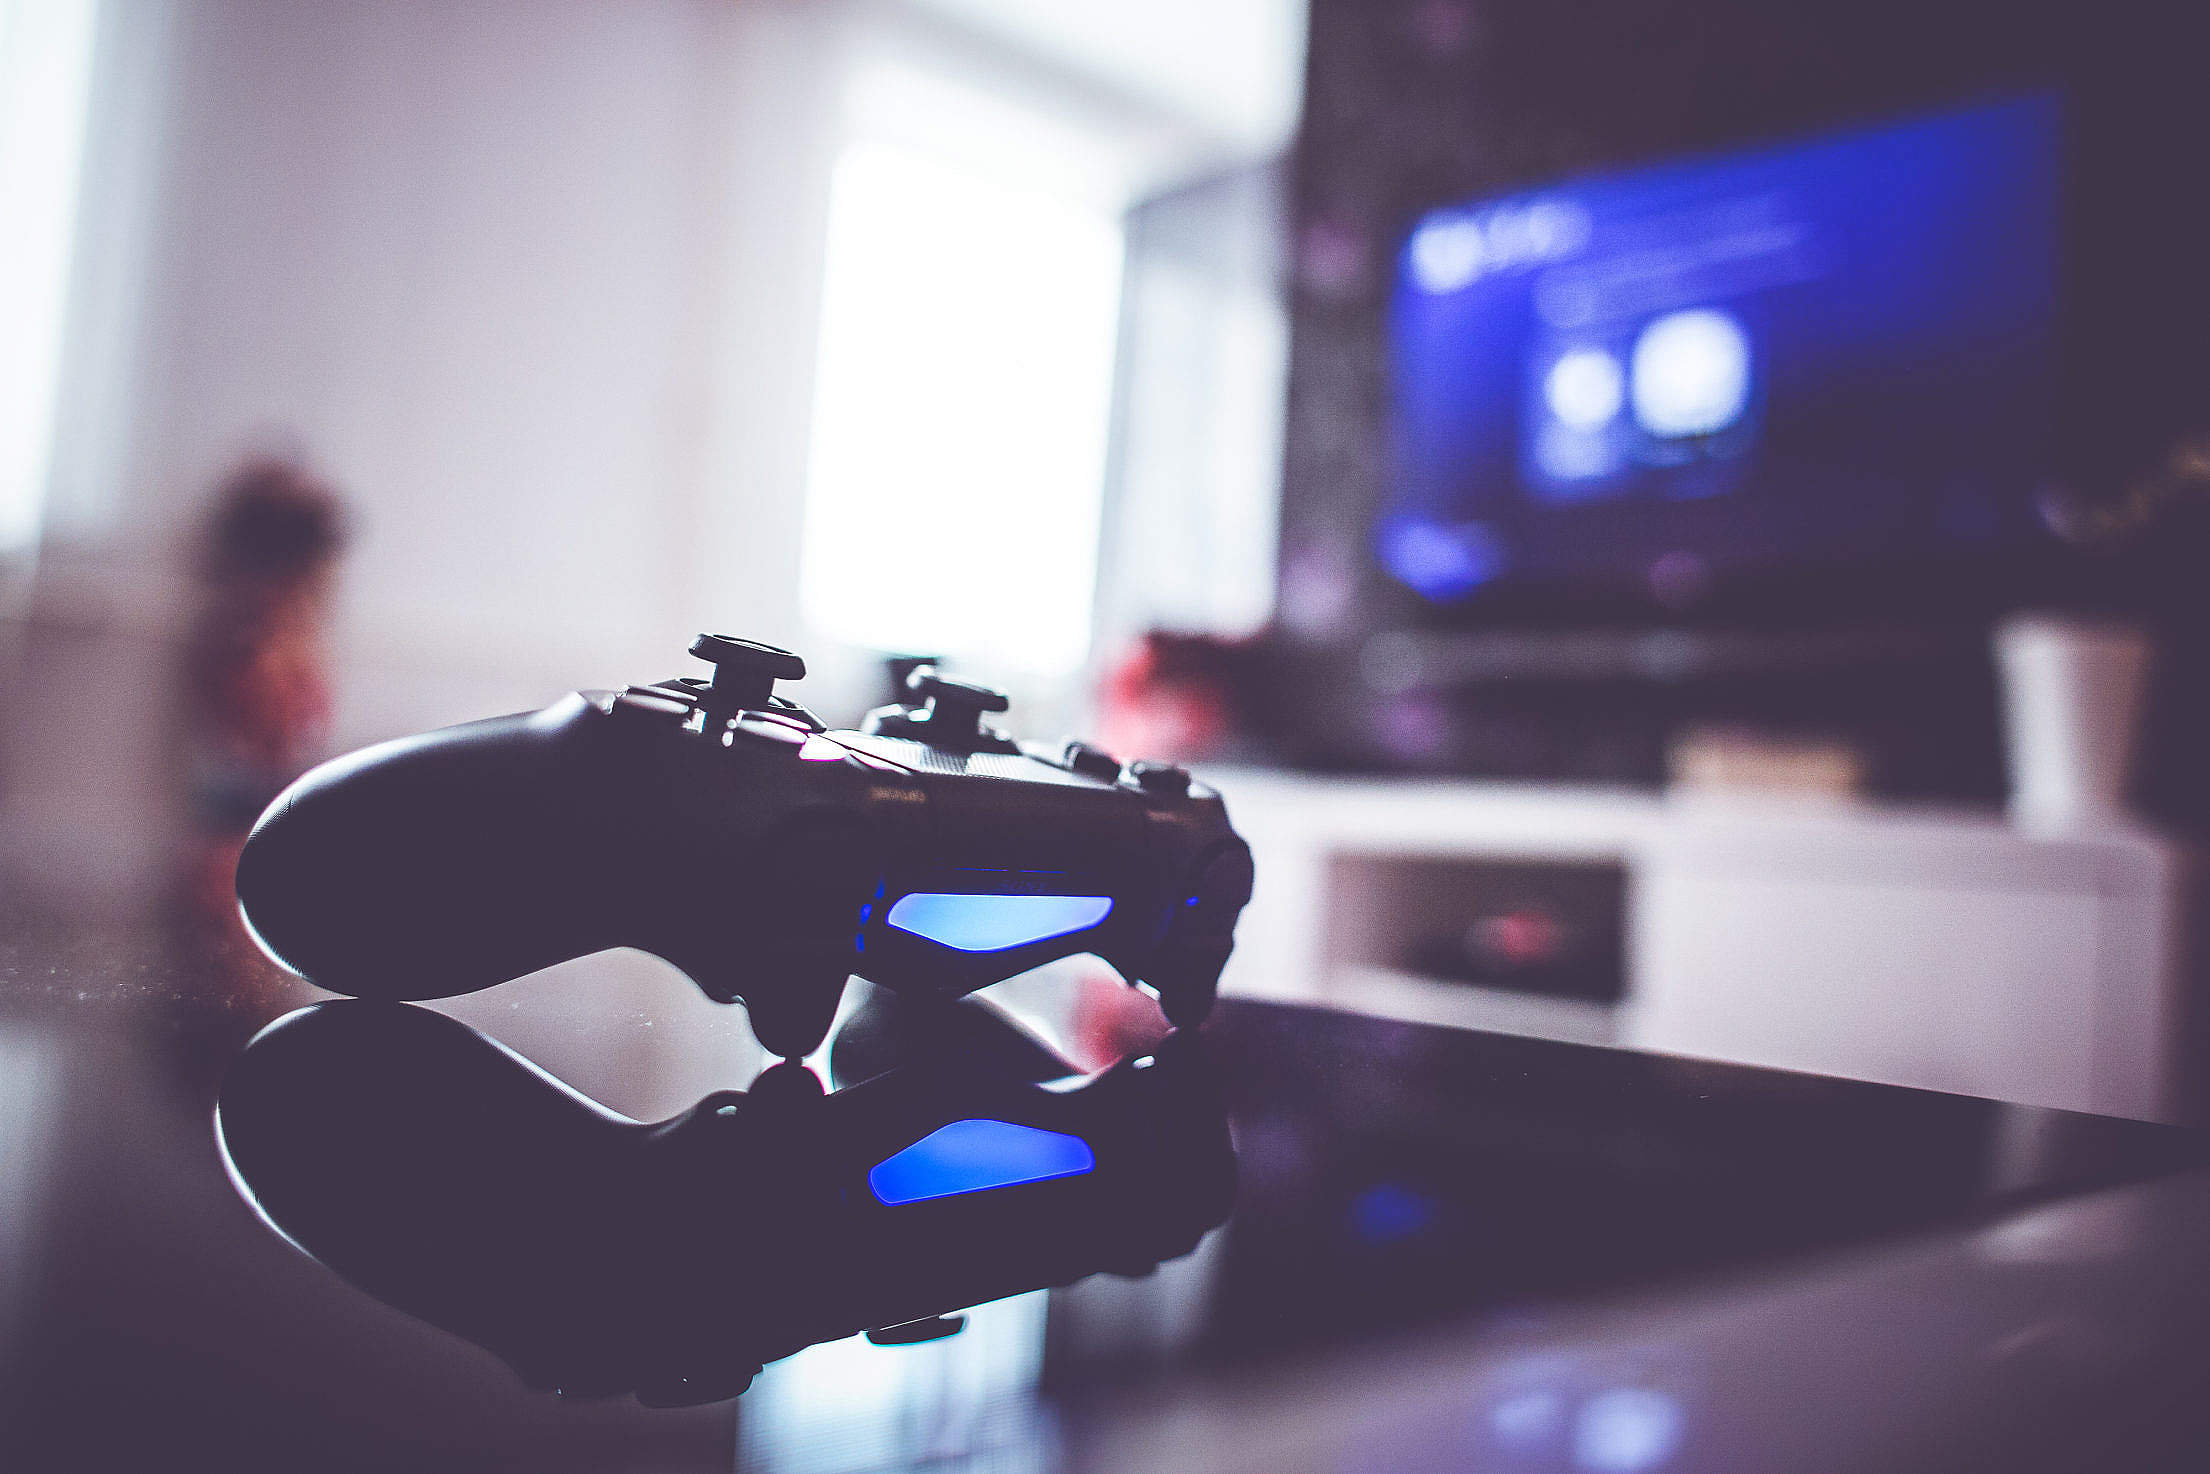 Gaming Controller is Ready Free Stock Photo